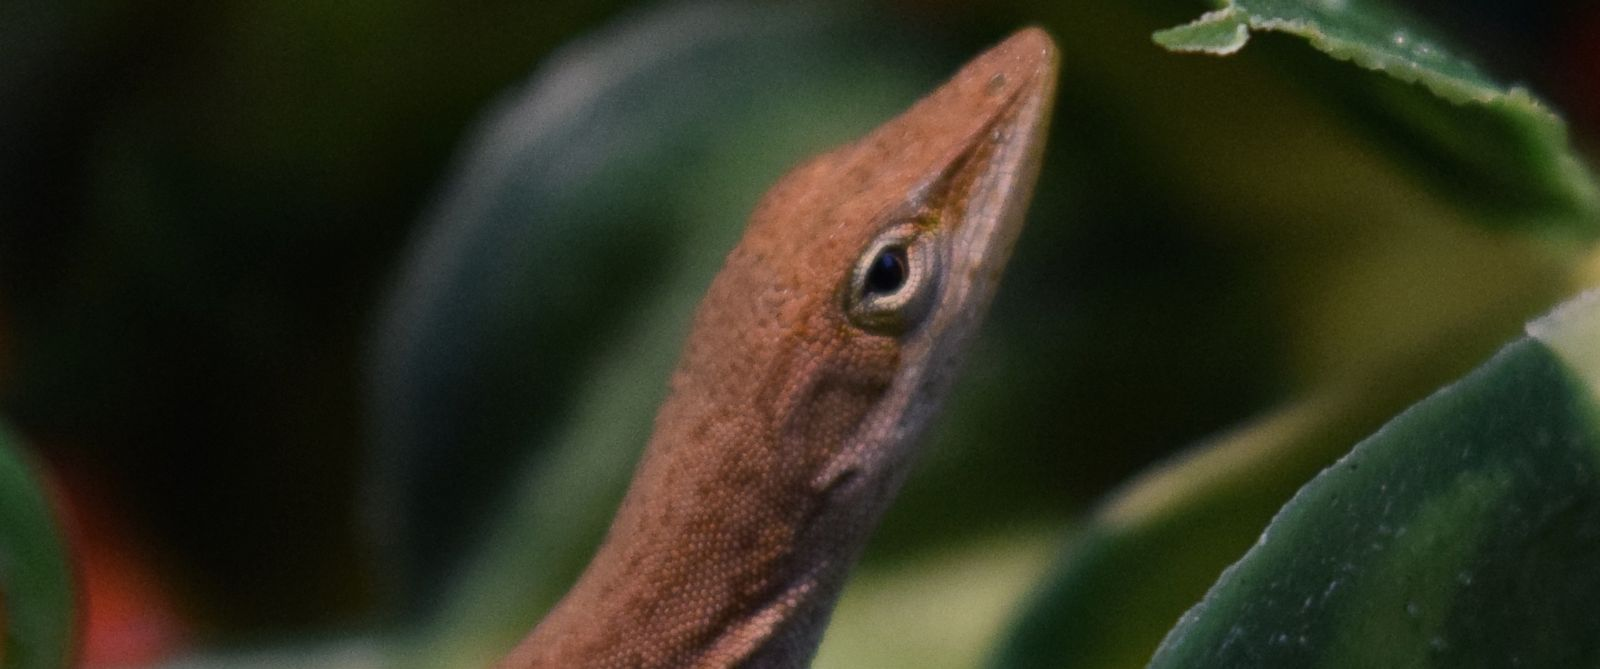 """PHOTO: A lizard found in a kindergarten students homemade salad on Jan. 19, 2016 has become a """"class mascot"""" for a science lab at Riverside Elementary School in Princeton, N.J."""